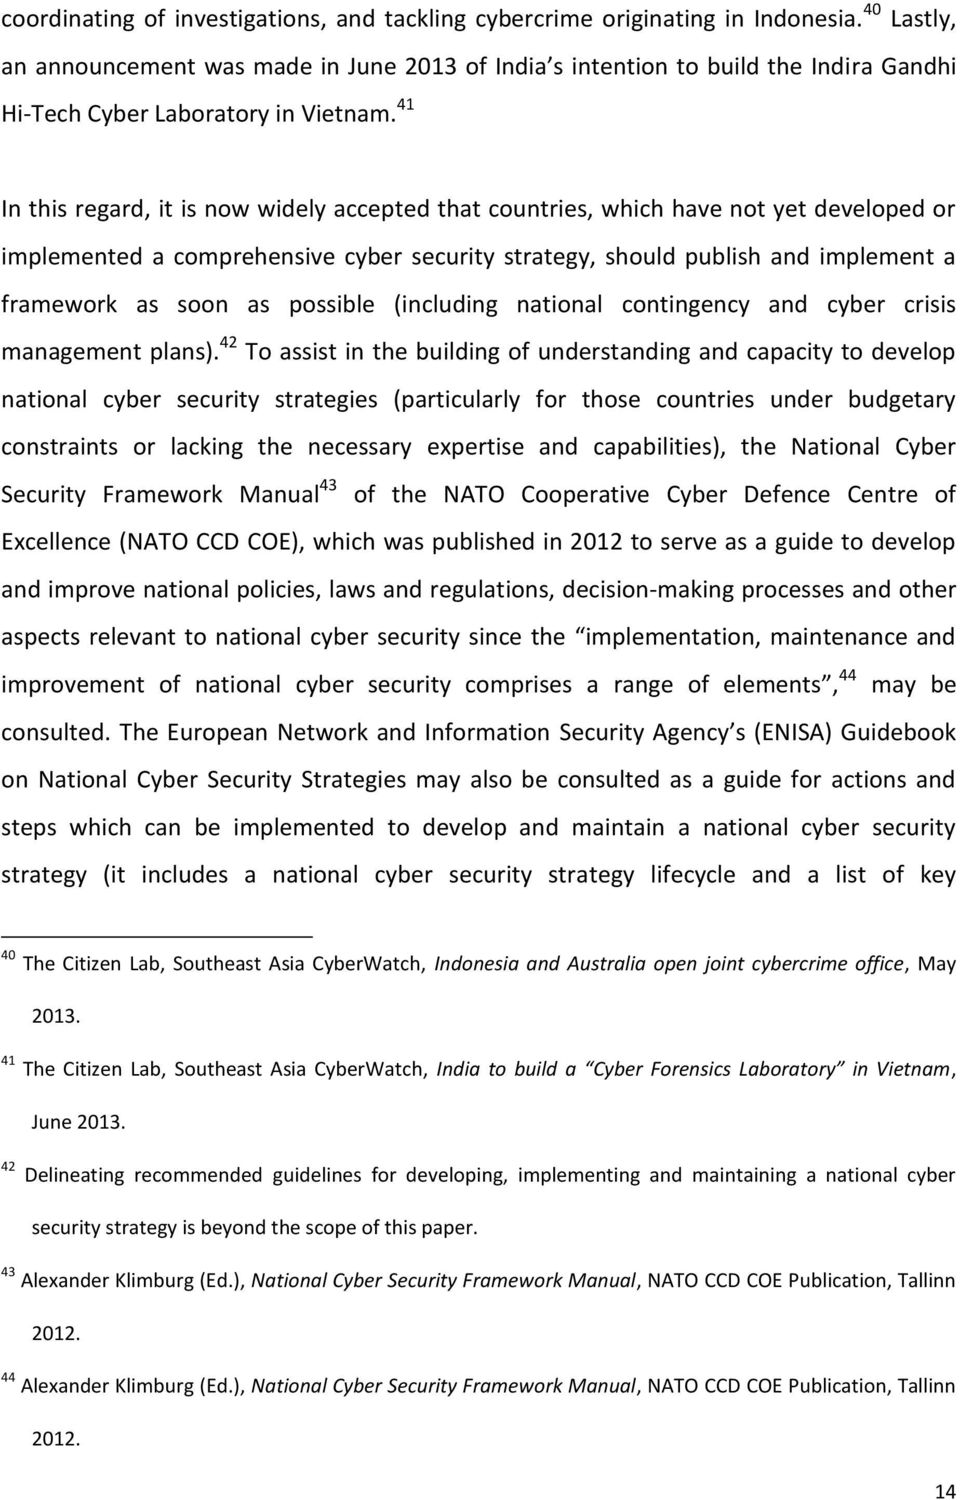 41 In this regard, it is now widely accepted that countries, which have not yet developed or implemented a comprehensive cyber security strategy, should publish and implement a framework as soon as